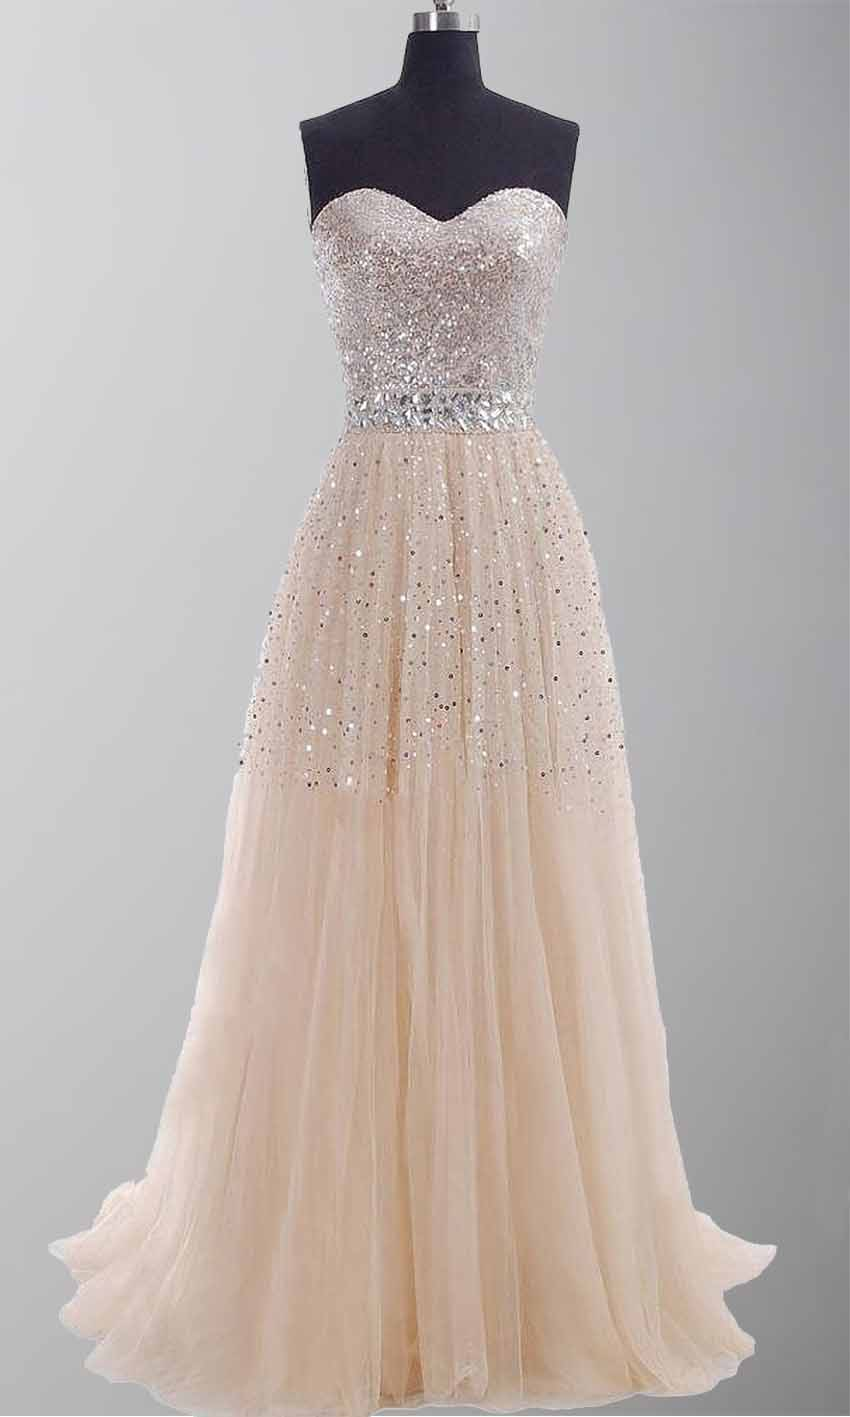 Champagne Sequin Sweetheart Long Prom Gowns KSP254 [KSP254 ...